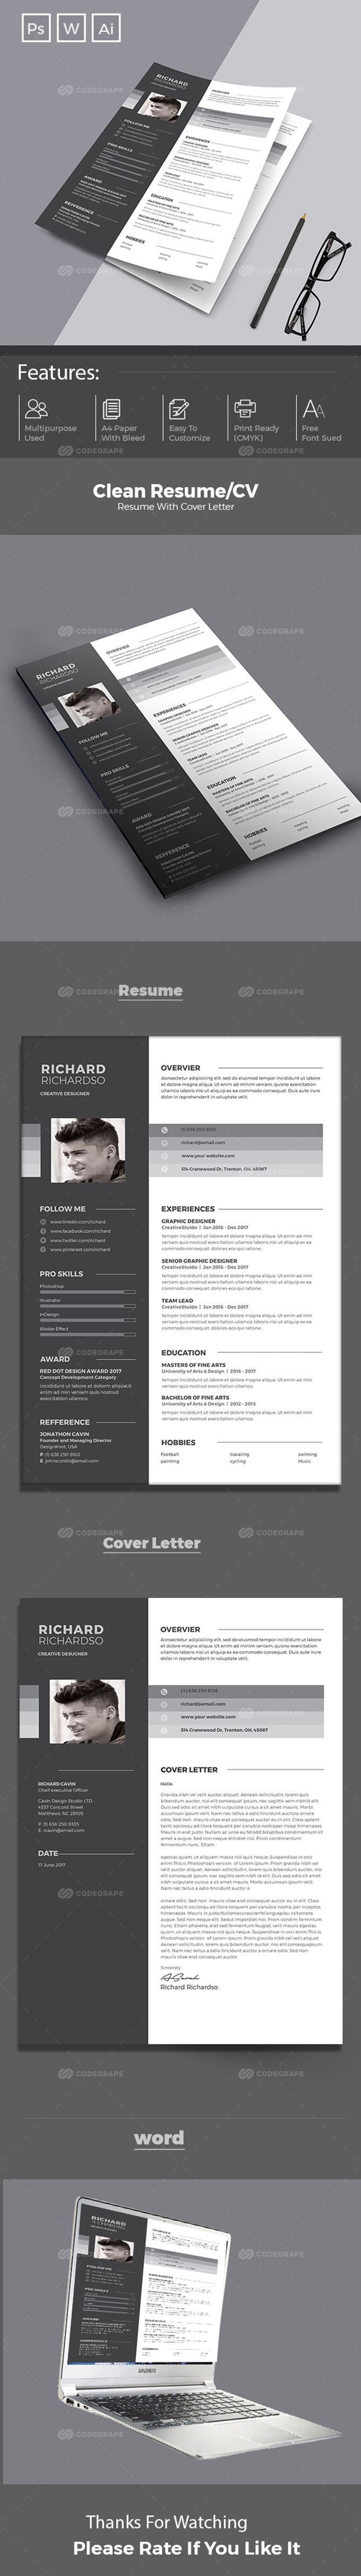 Best 25 Simple Cover Letter Ideas On Pinterest Resume Ideas